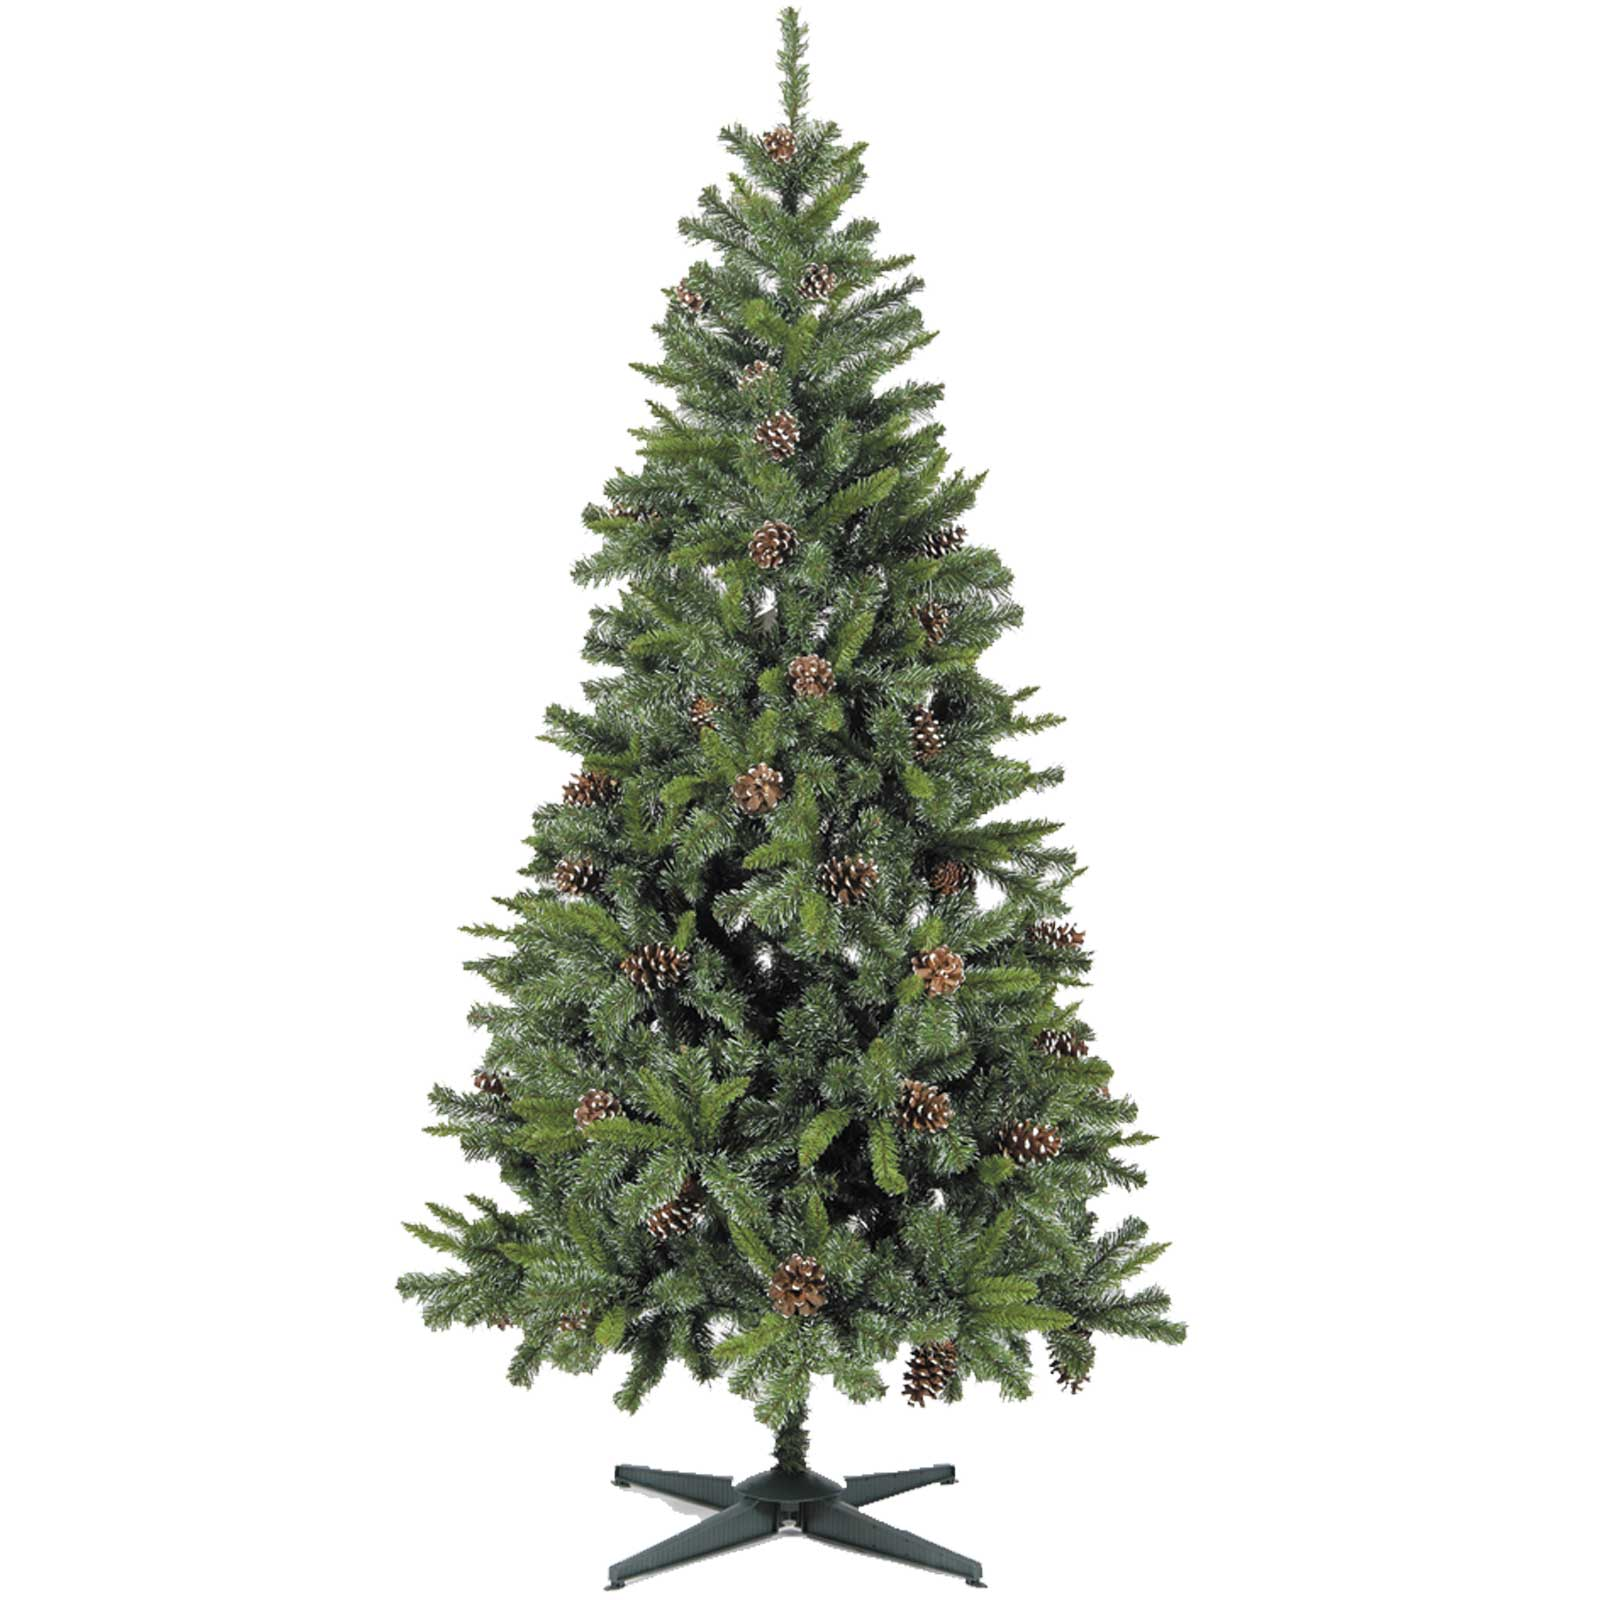 Buy Christmas Tree Seedlings: Artificial Christmas Tree